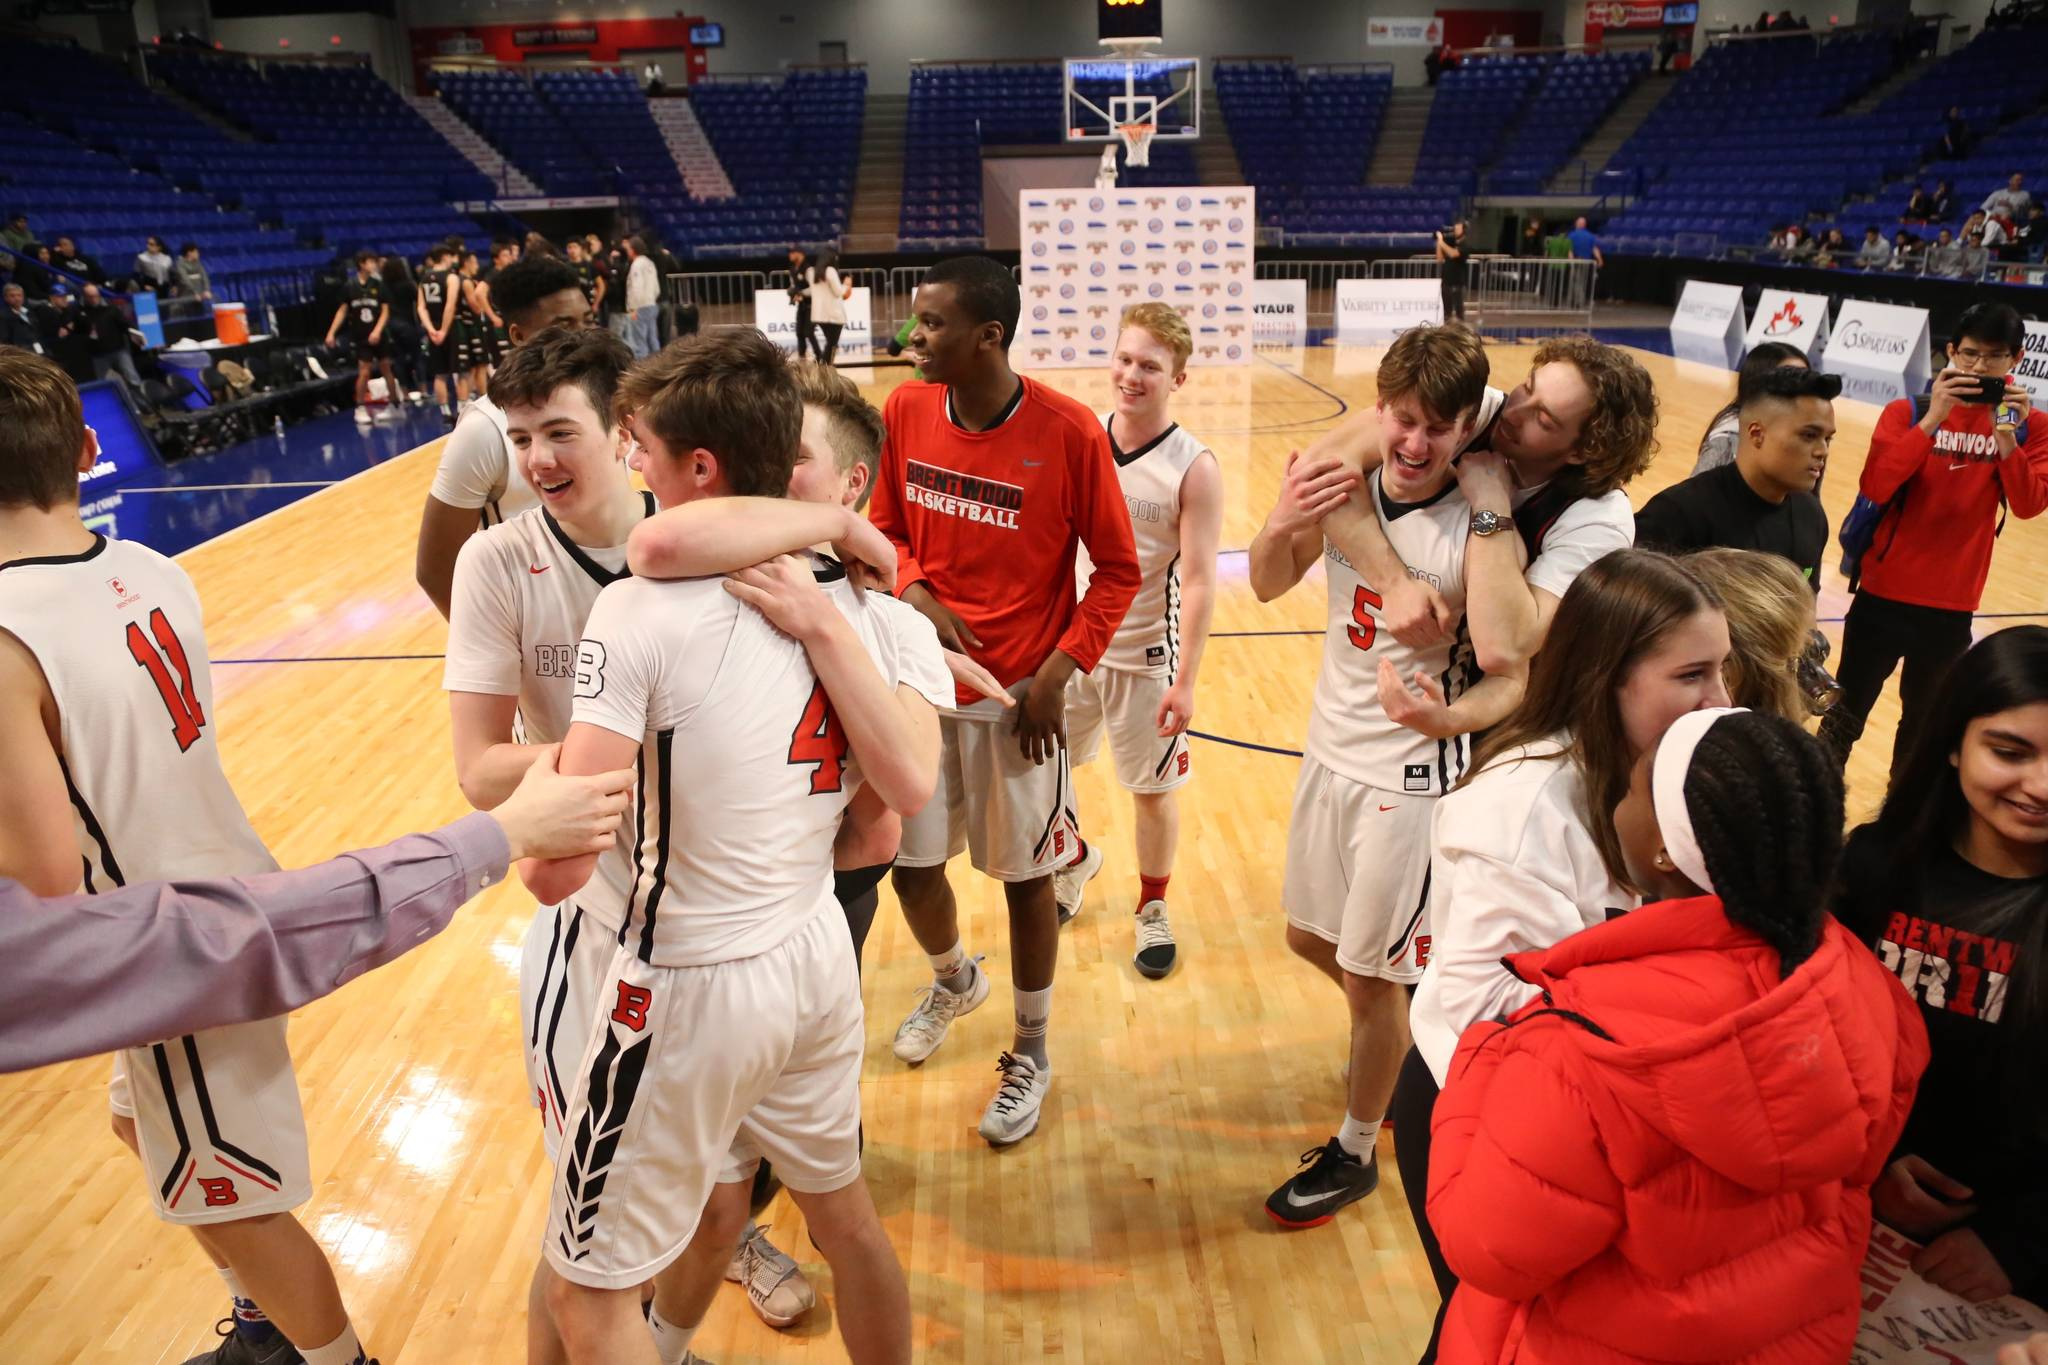 VIDEO: Brentwood College slays Dragons in B.C. final